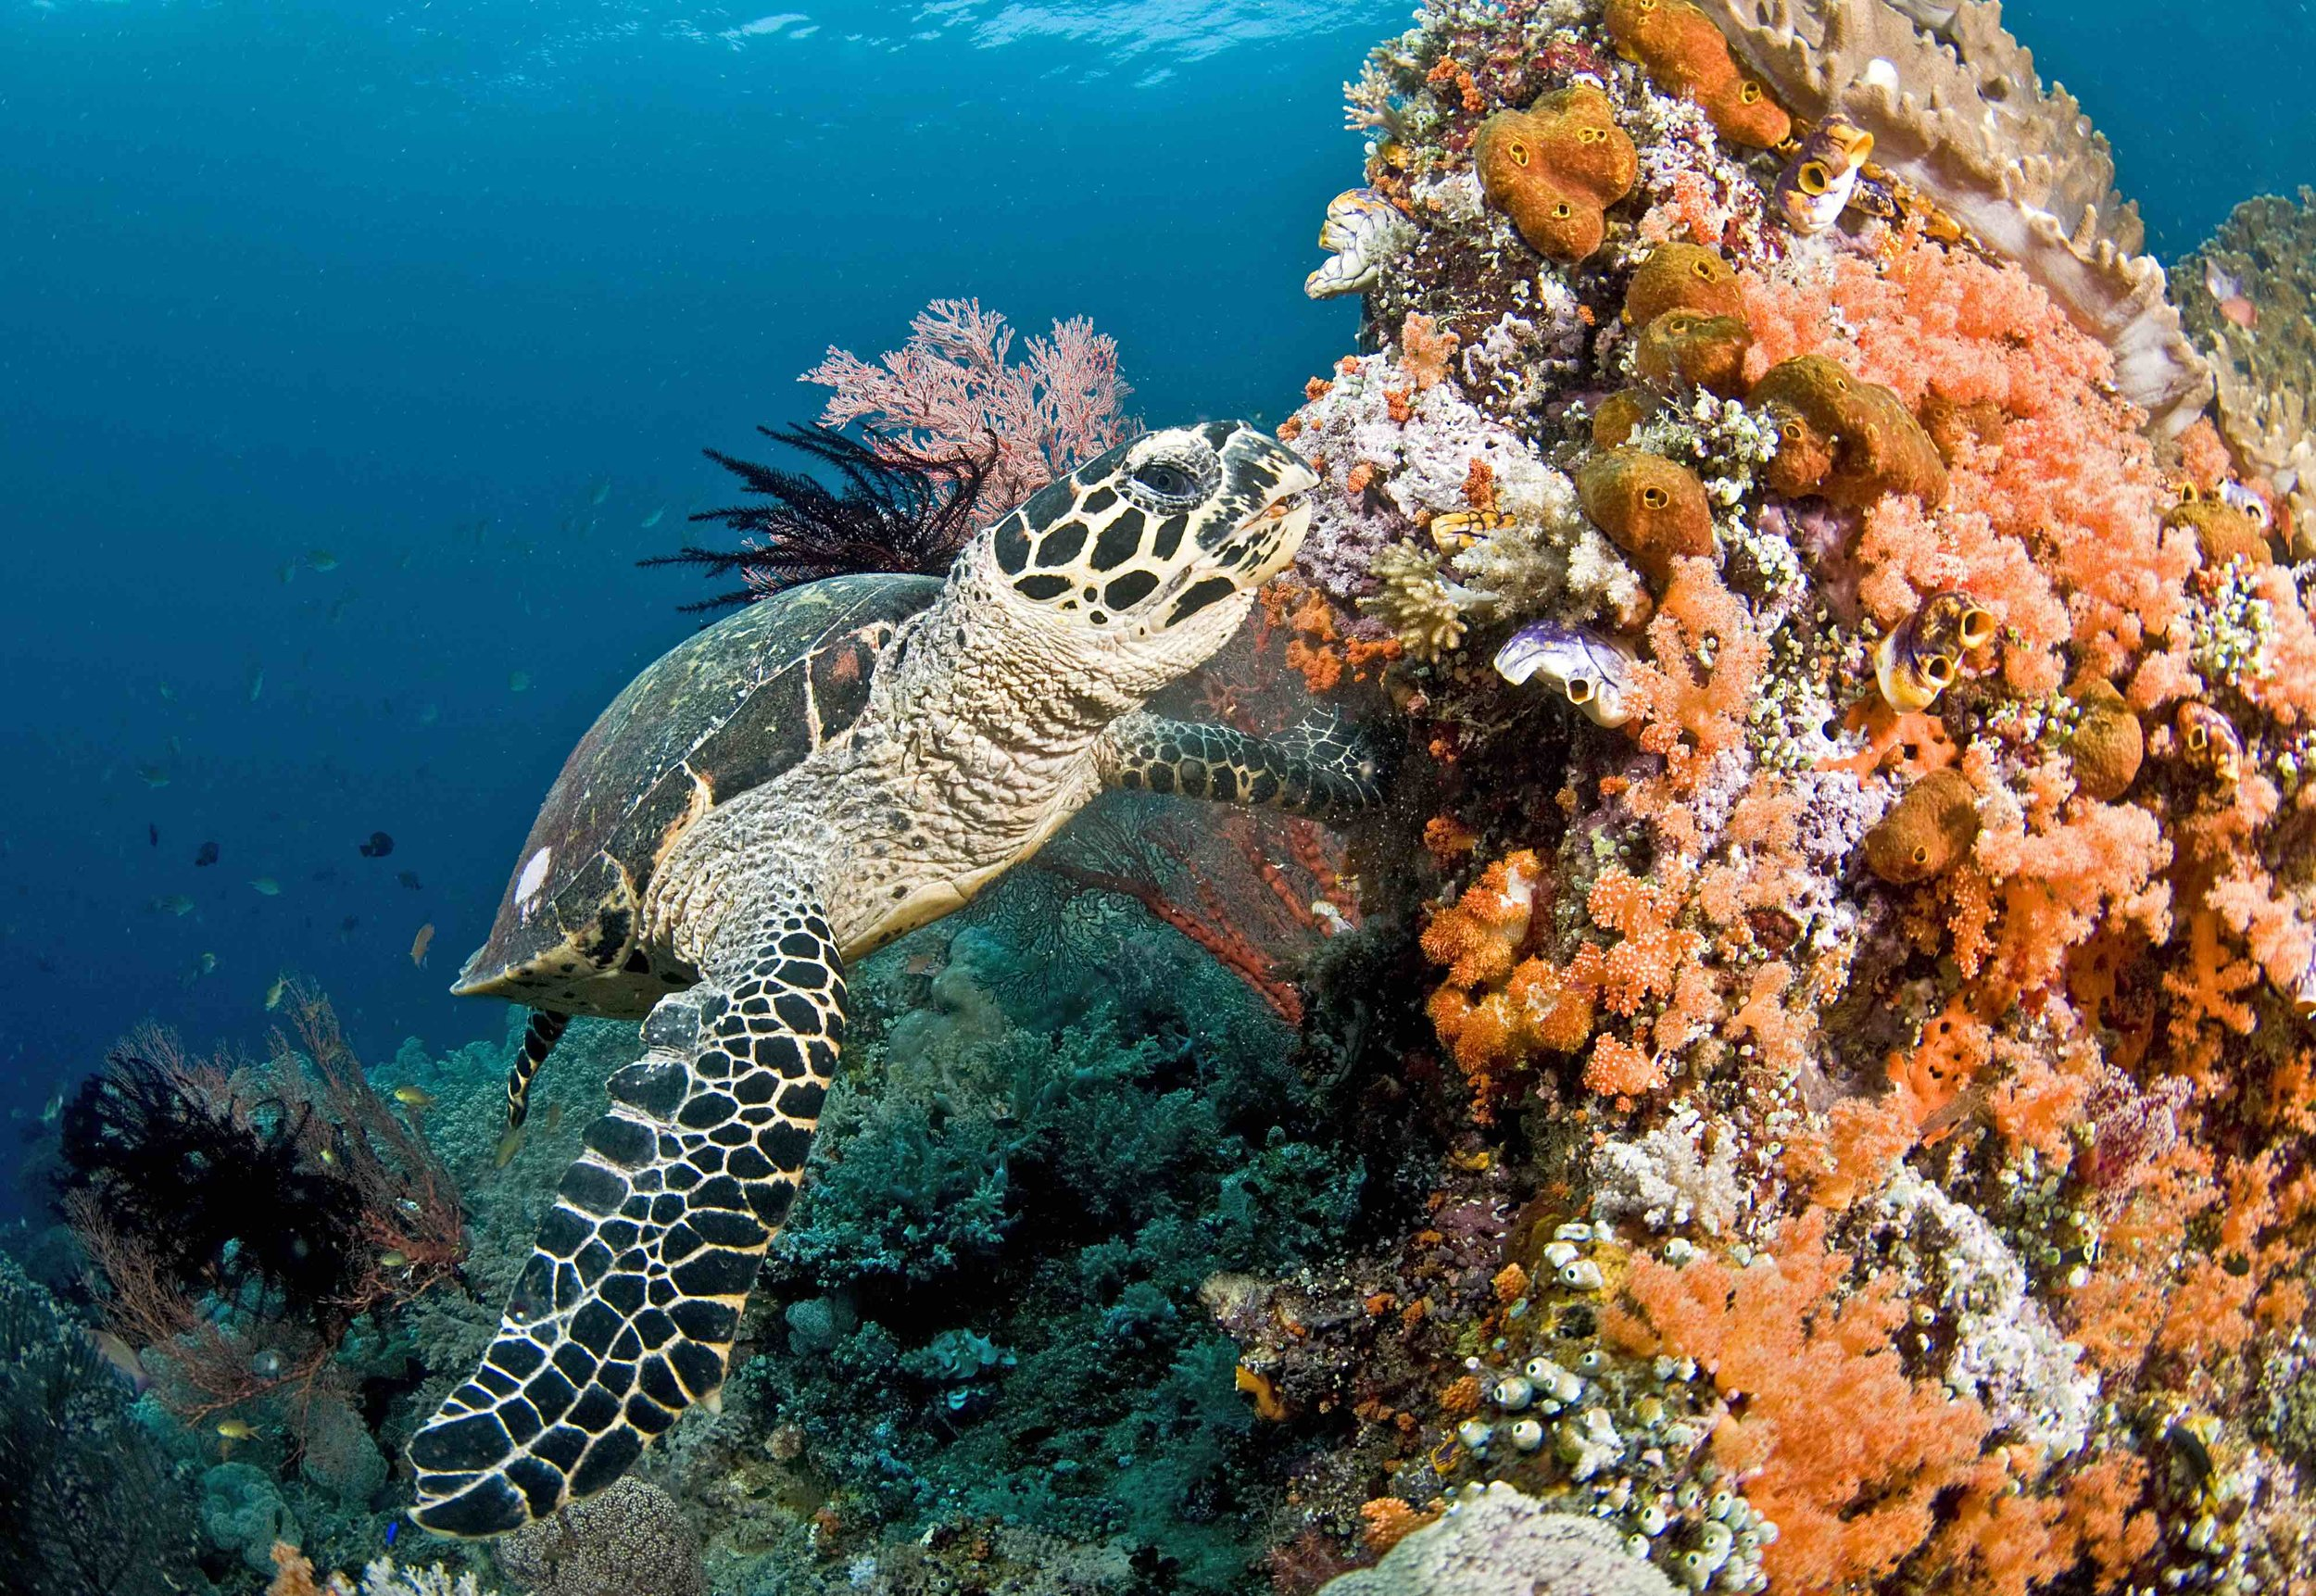 Turtle in the Maldives, May 2016 © JAYNE JENKINS / CORAL REEF IMAGE BANK